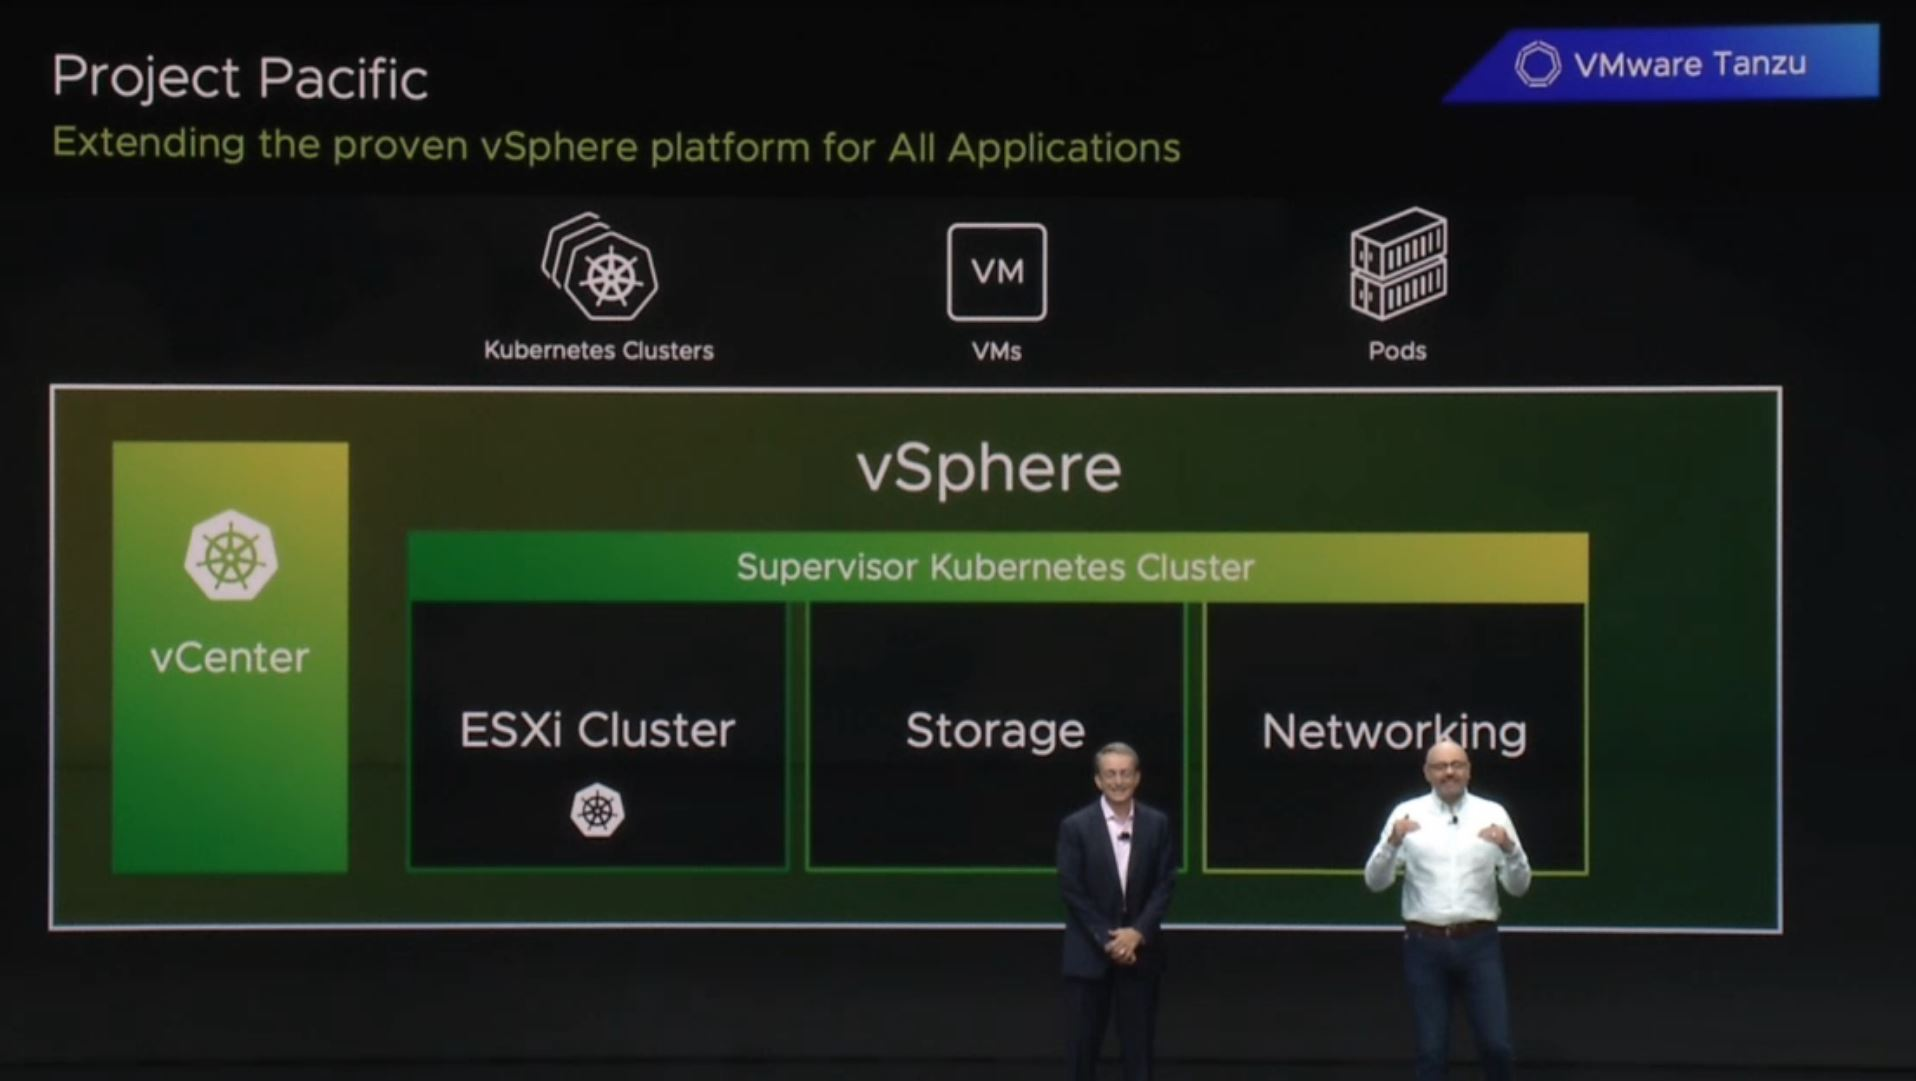 VMware Tanzu VSphere Integration For Kuberenetes 2 VMworld